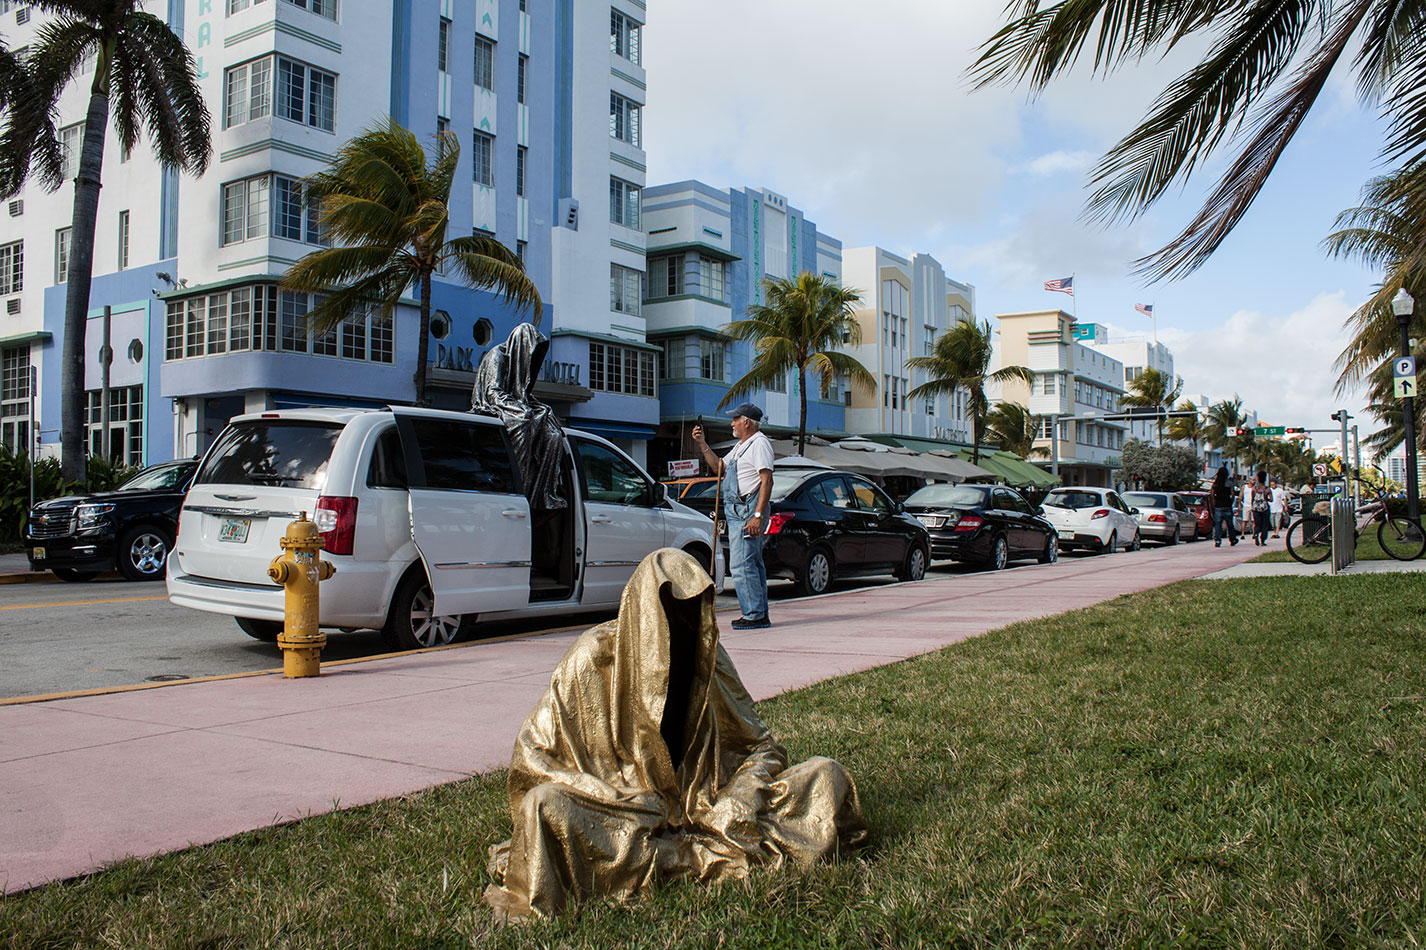 art-basel-miami-beach-fair-usa-florida-guardians-of-time-manfred-kili-kielnhofer-contemporary-fine-art-modern-arts-design-antiques-sculpture-5912